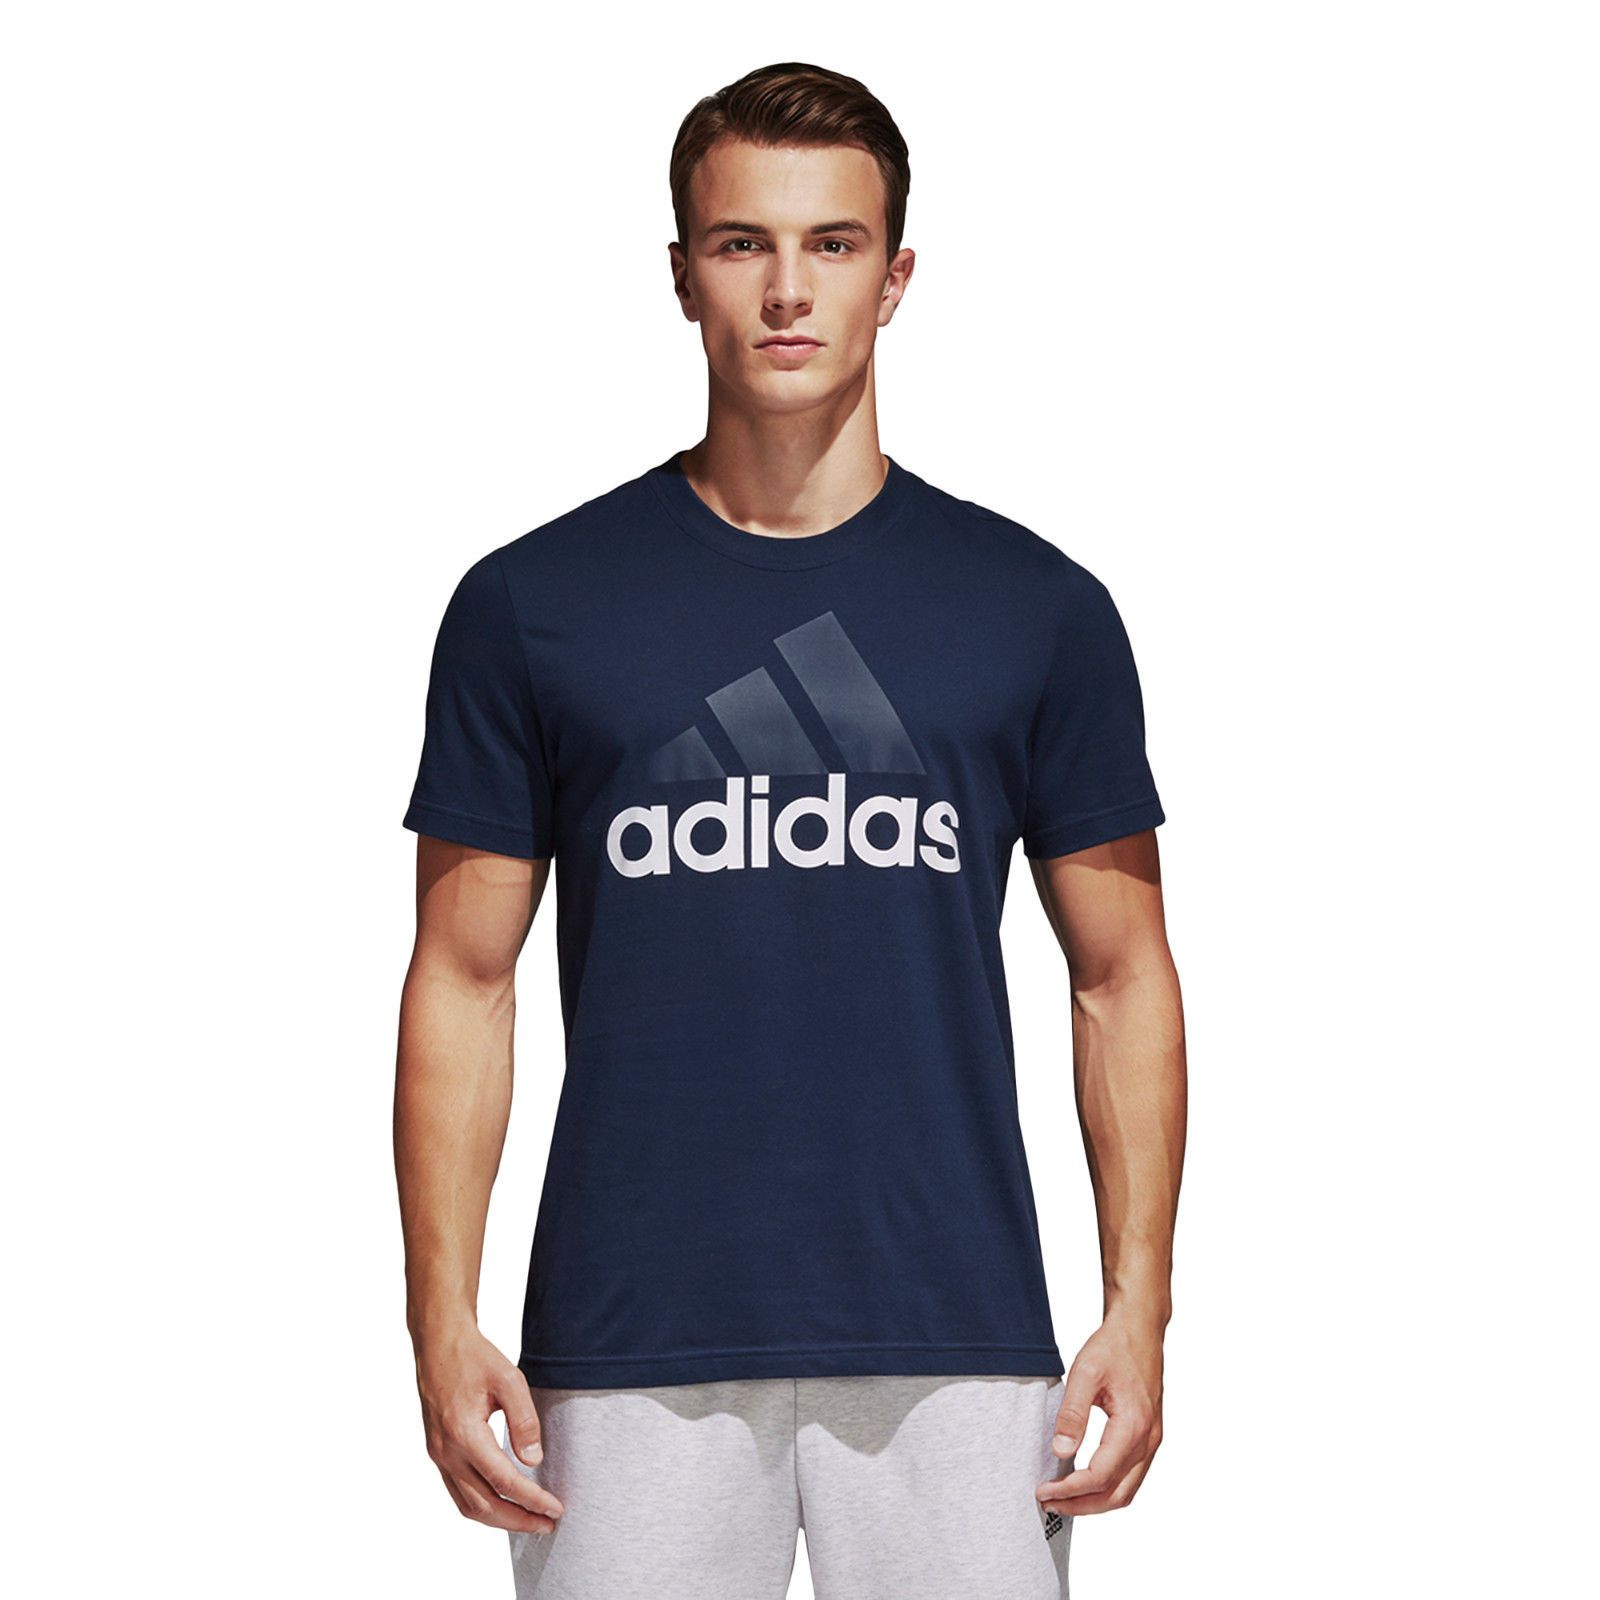 adidas Men's T Shirts for sale | eBay